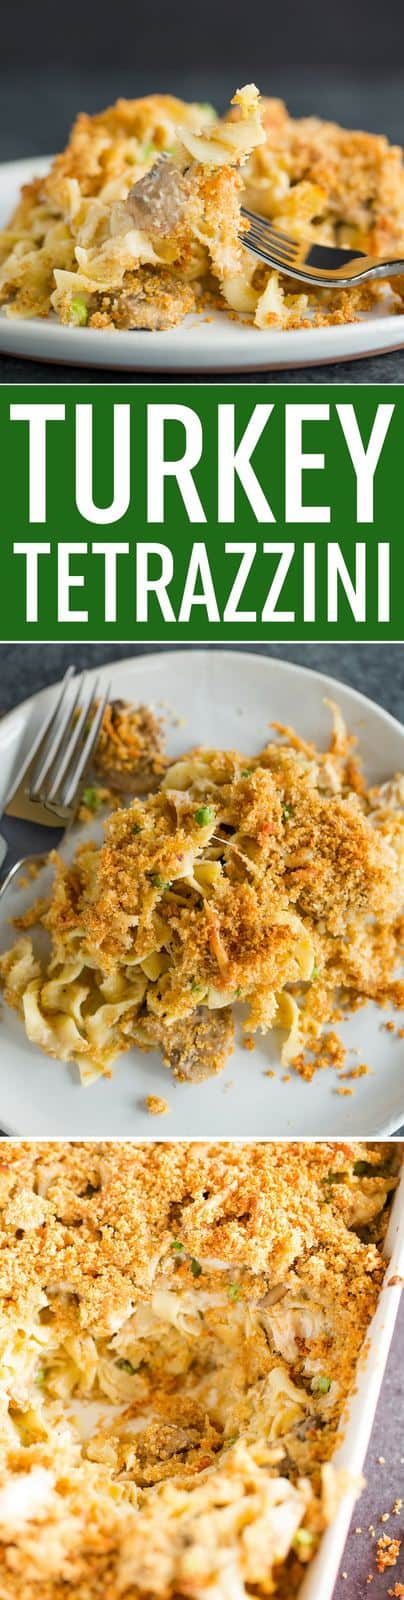 Turkey Tetrazzini - This classic casserole recipe is the perfect way to use up all of that leftover Thanksgiving turkey! #recipe #casserole #turkey #mushrooms #peas #cheese #thanksgiving #holidays